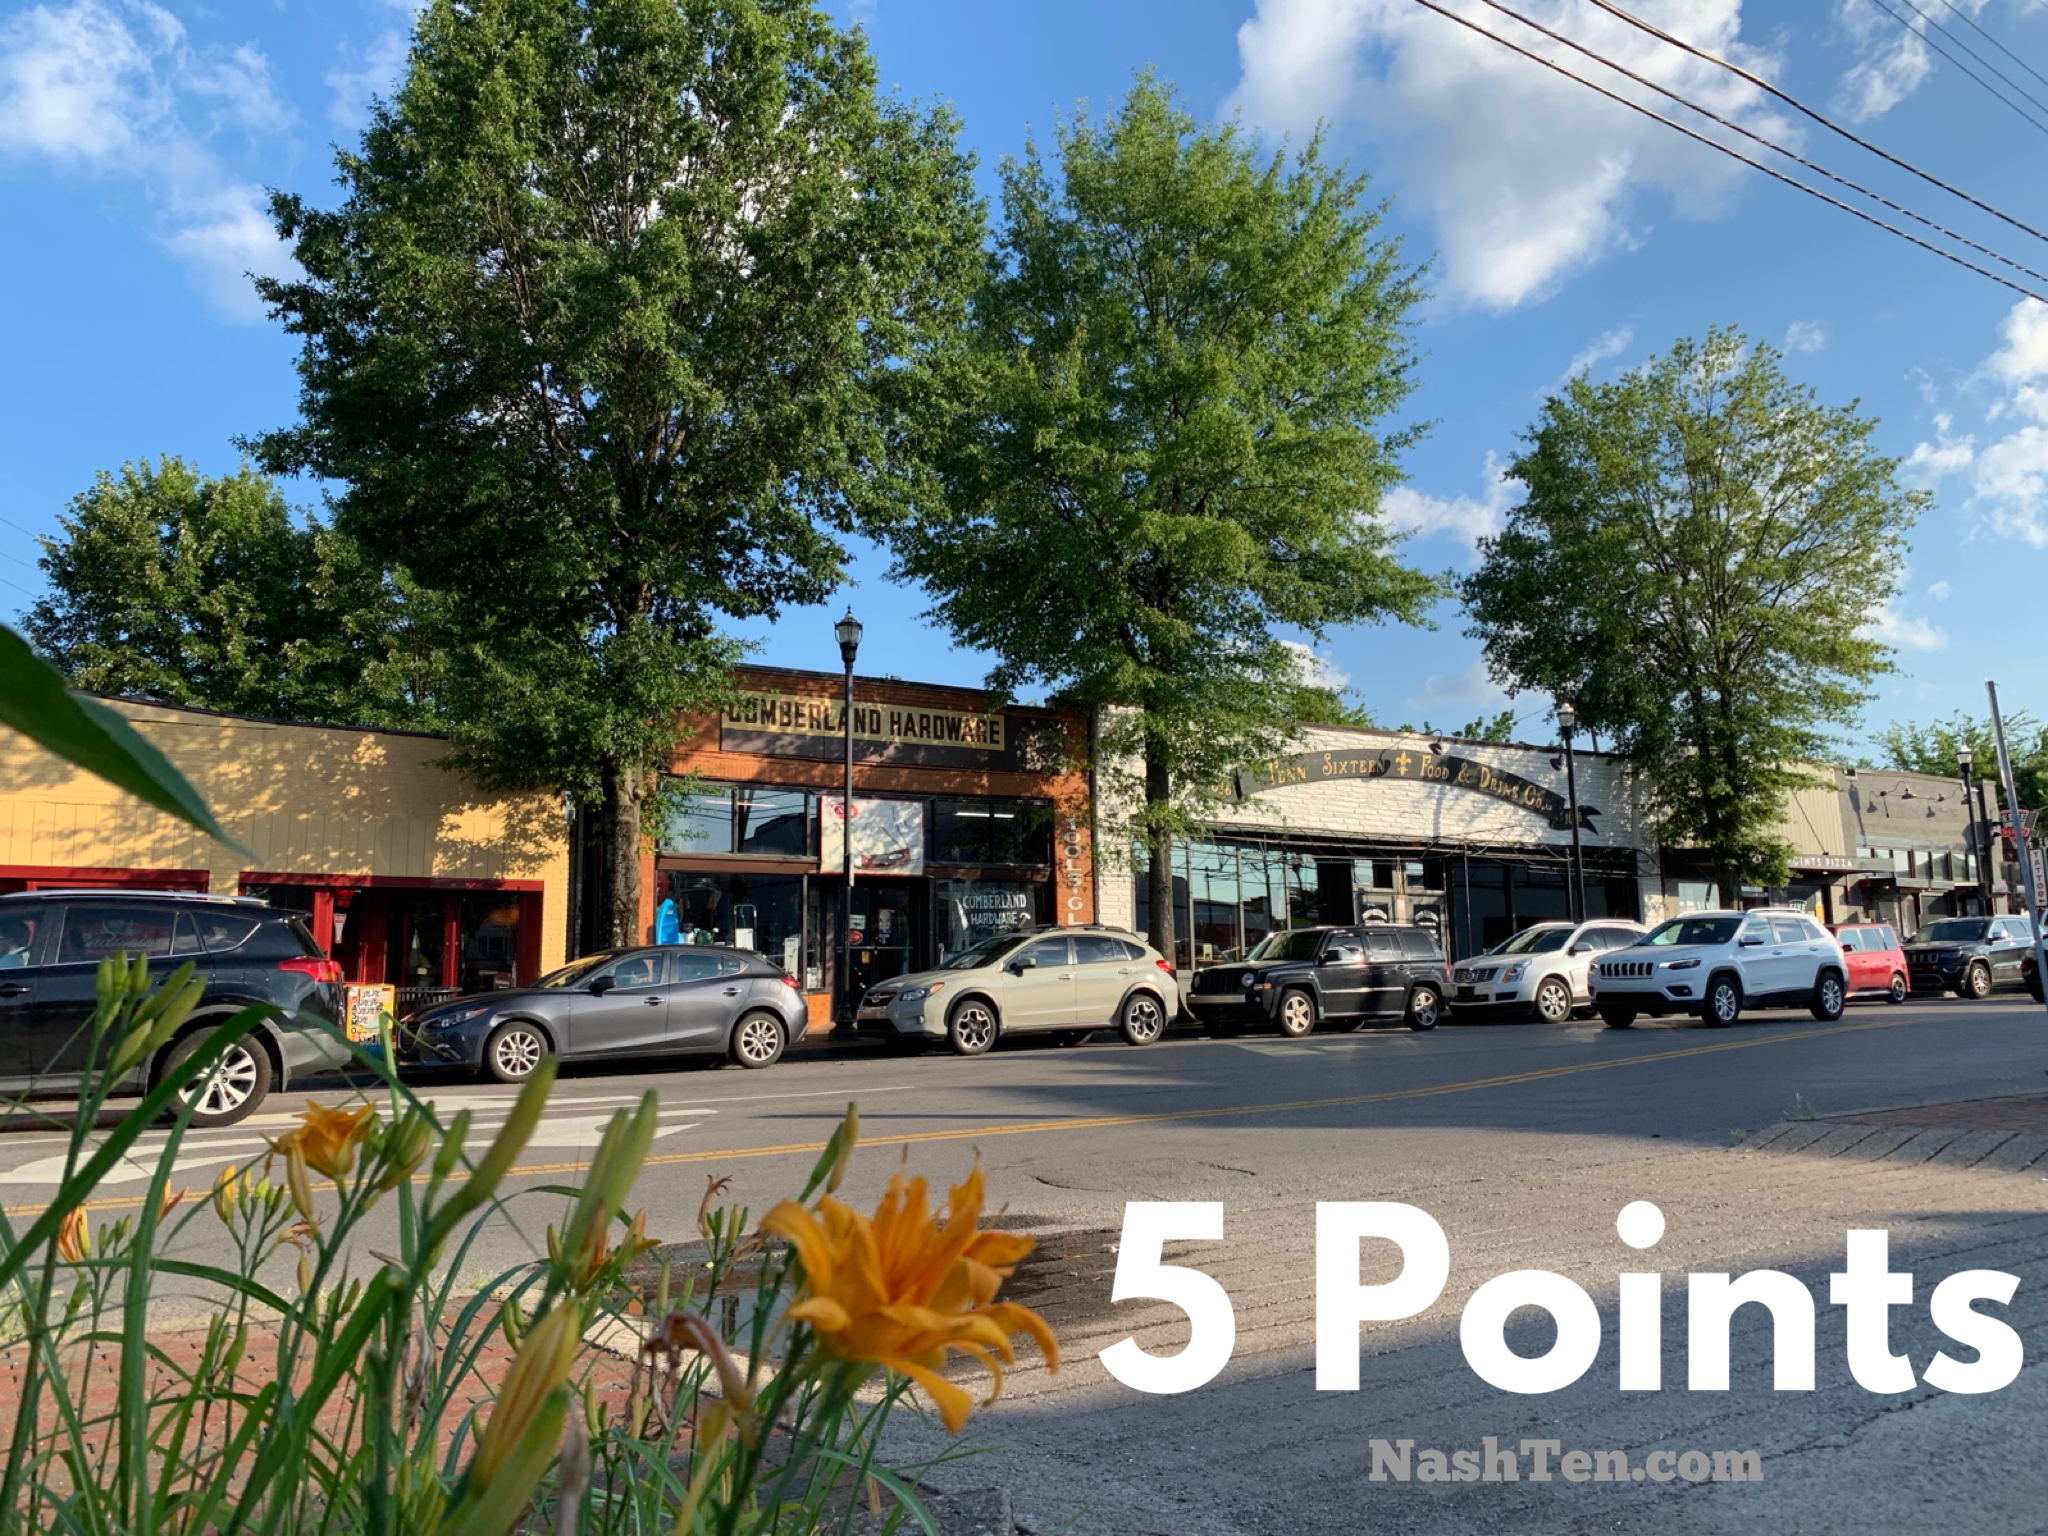 5 Points in East Nashville